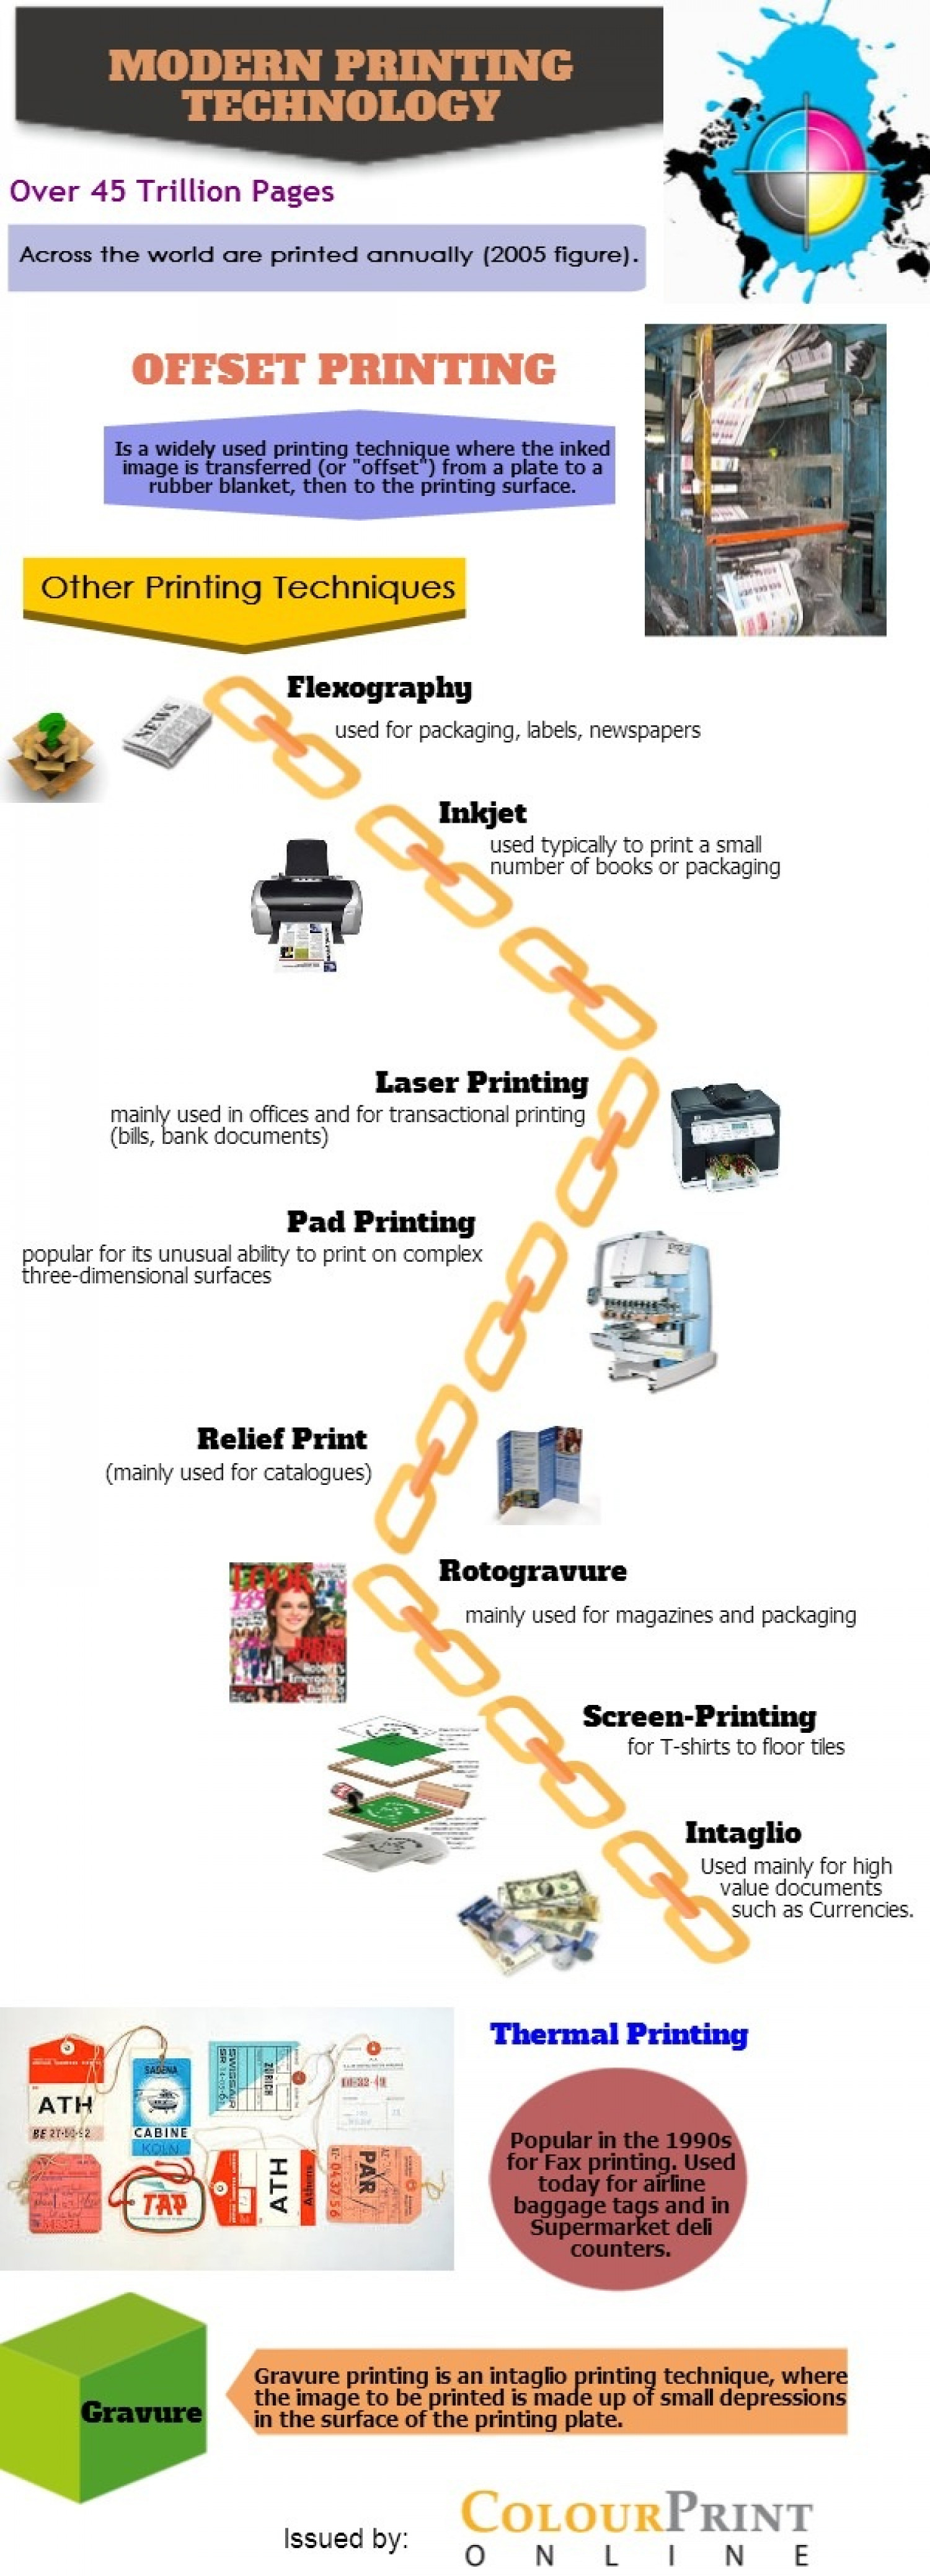 Modern Printing Technology Infographic